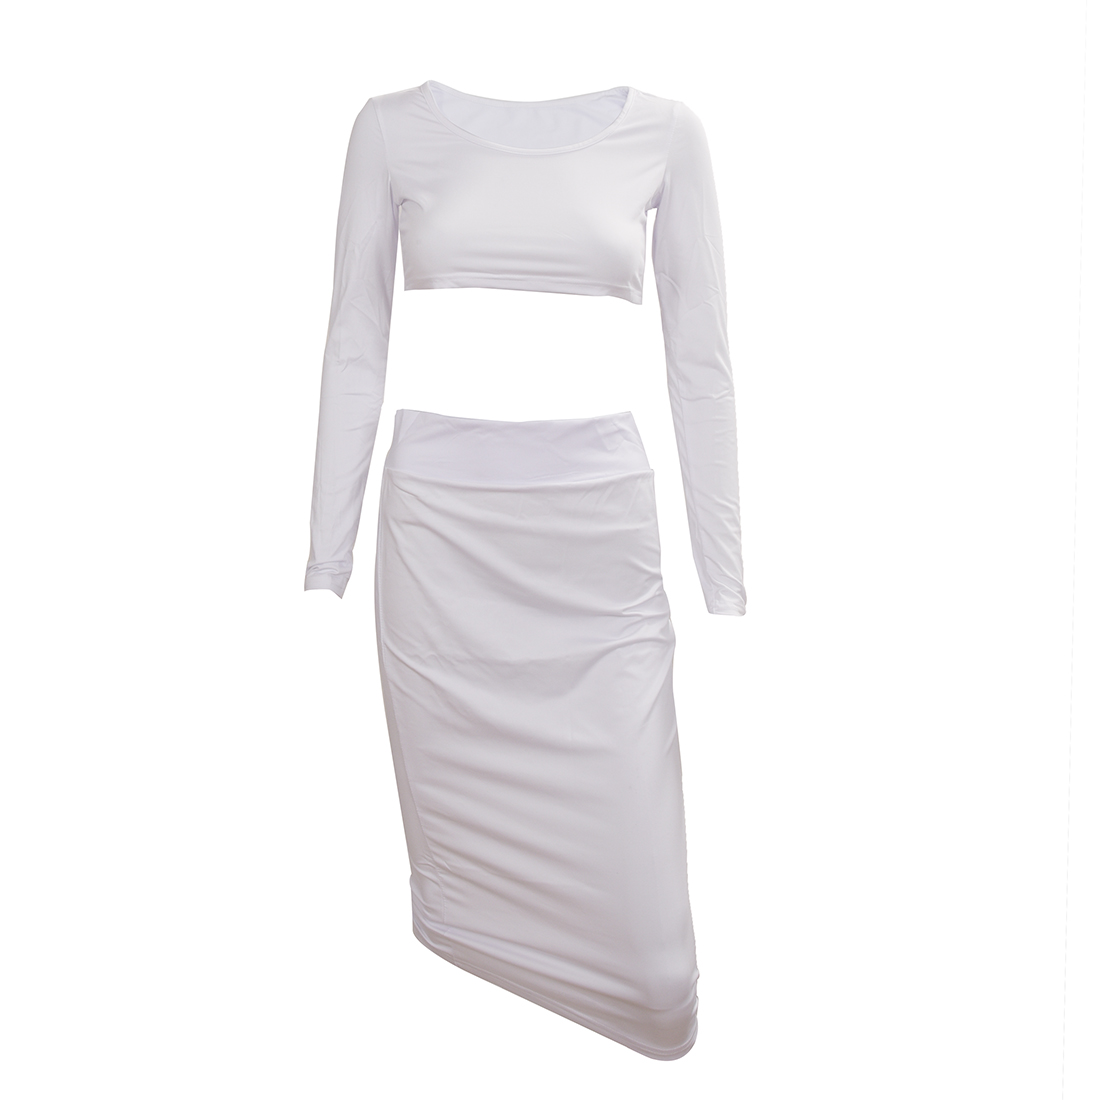 Compare Prices on White Lace Pencil Skirt with Crop Top- Online ...